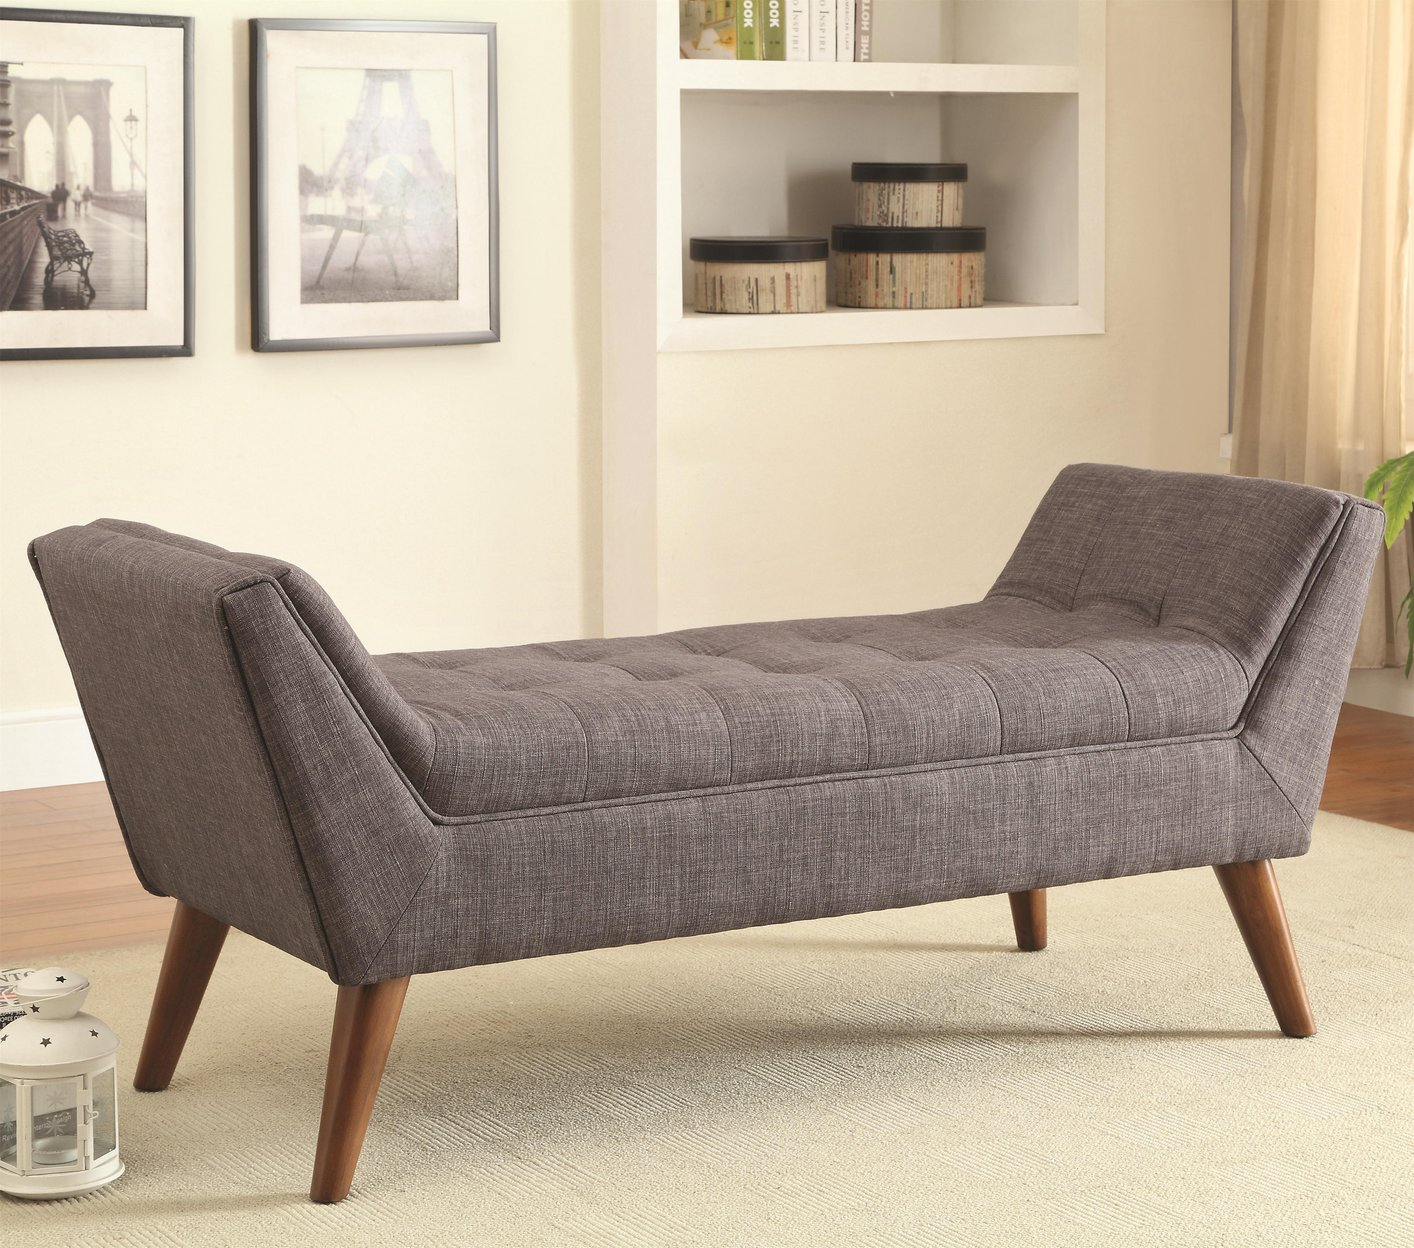 Steal-A-Sofa Furniture Outlet Los Angeles CA